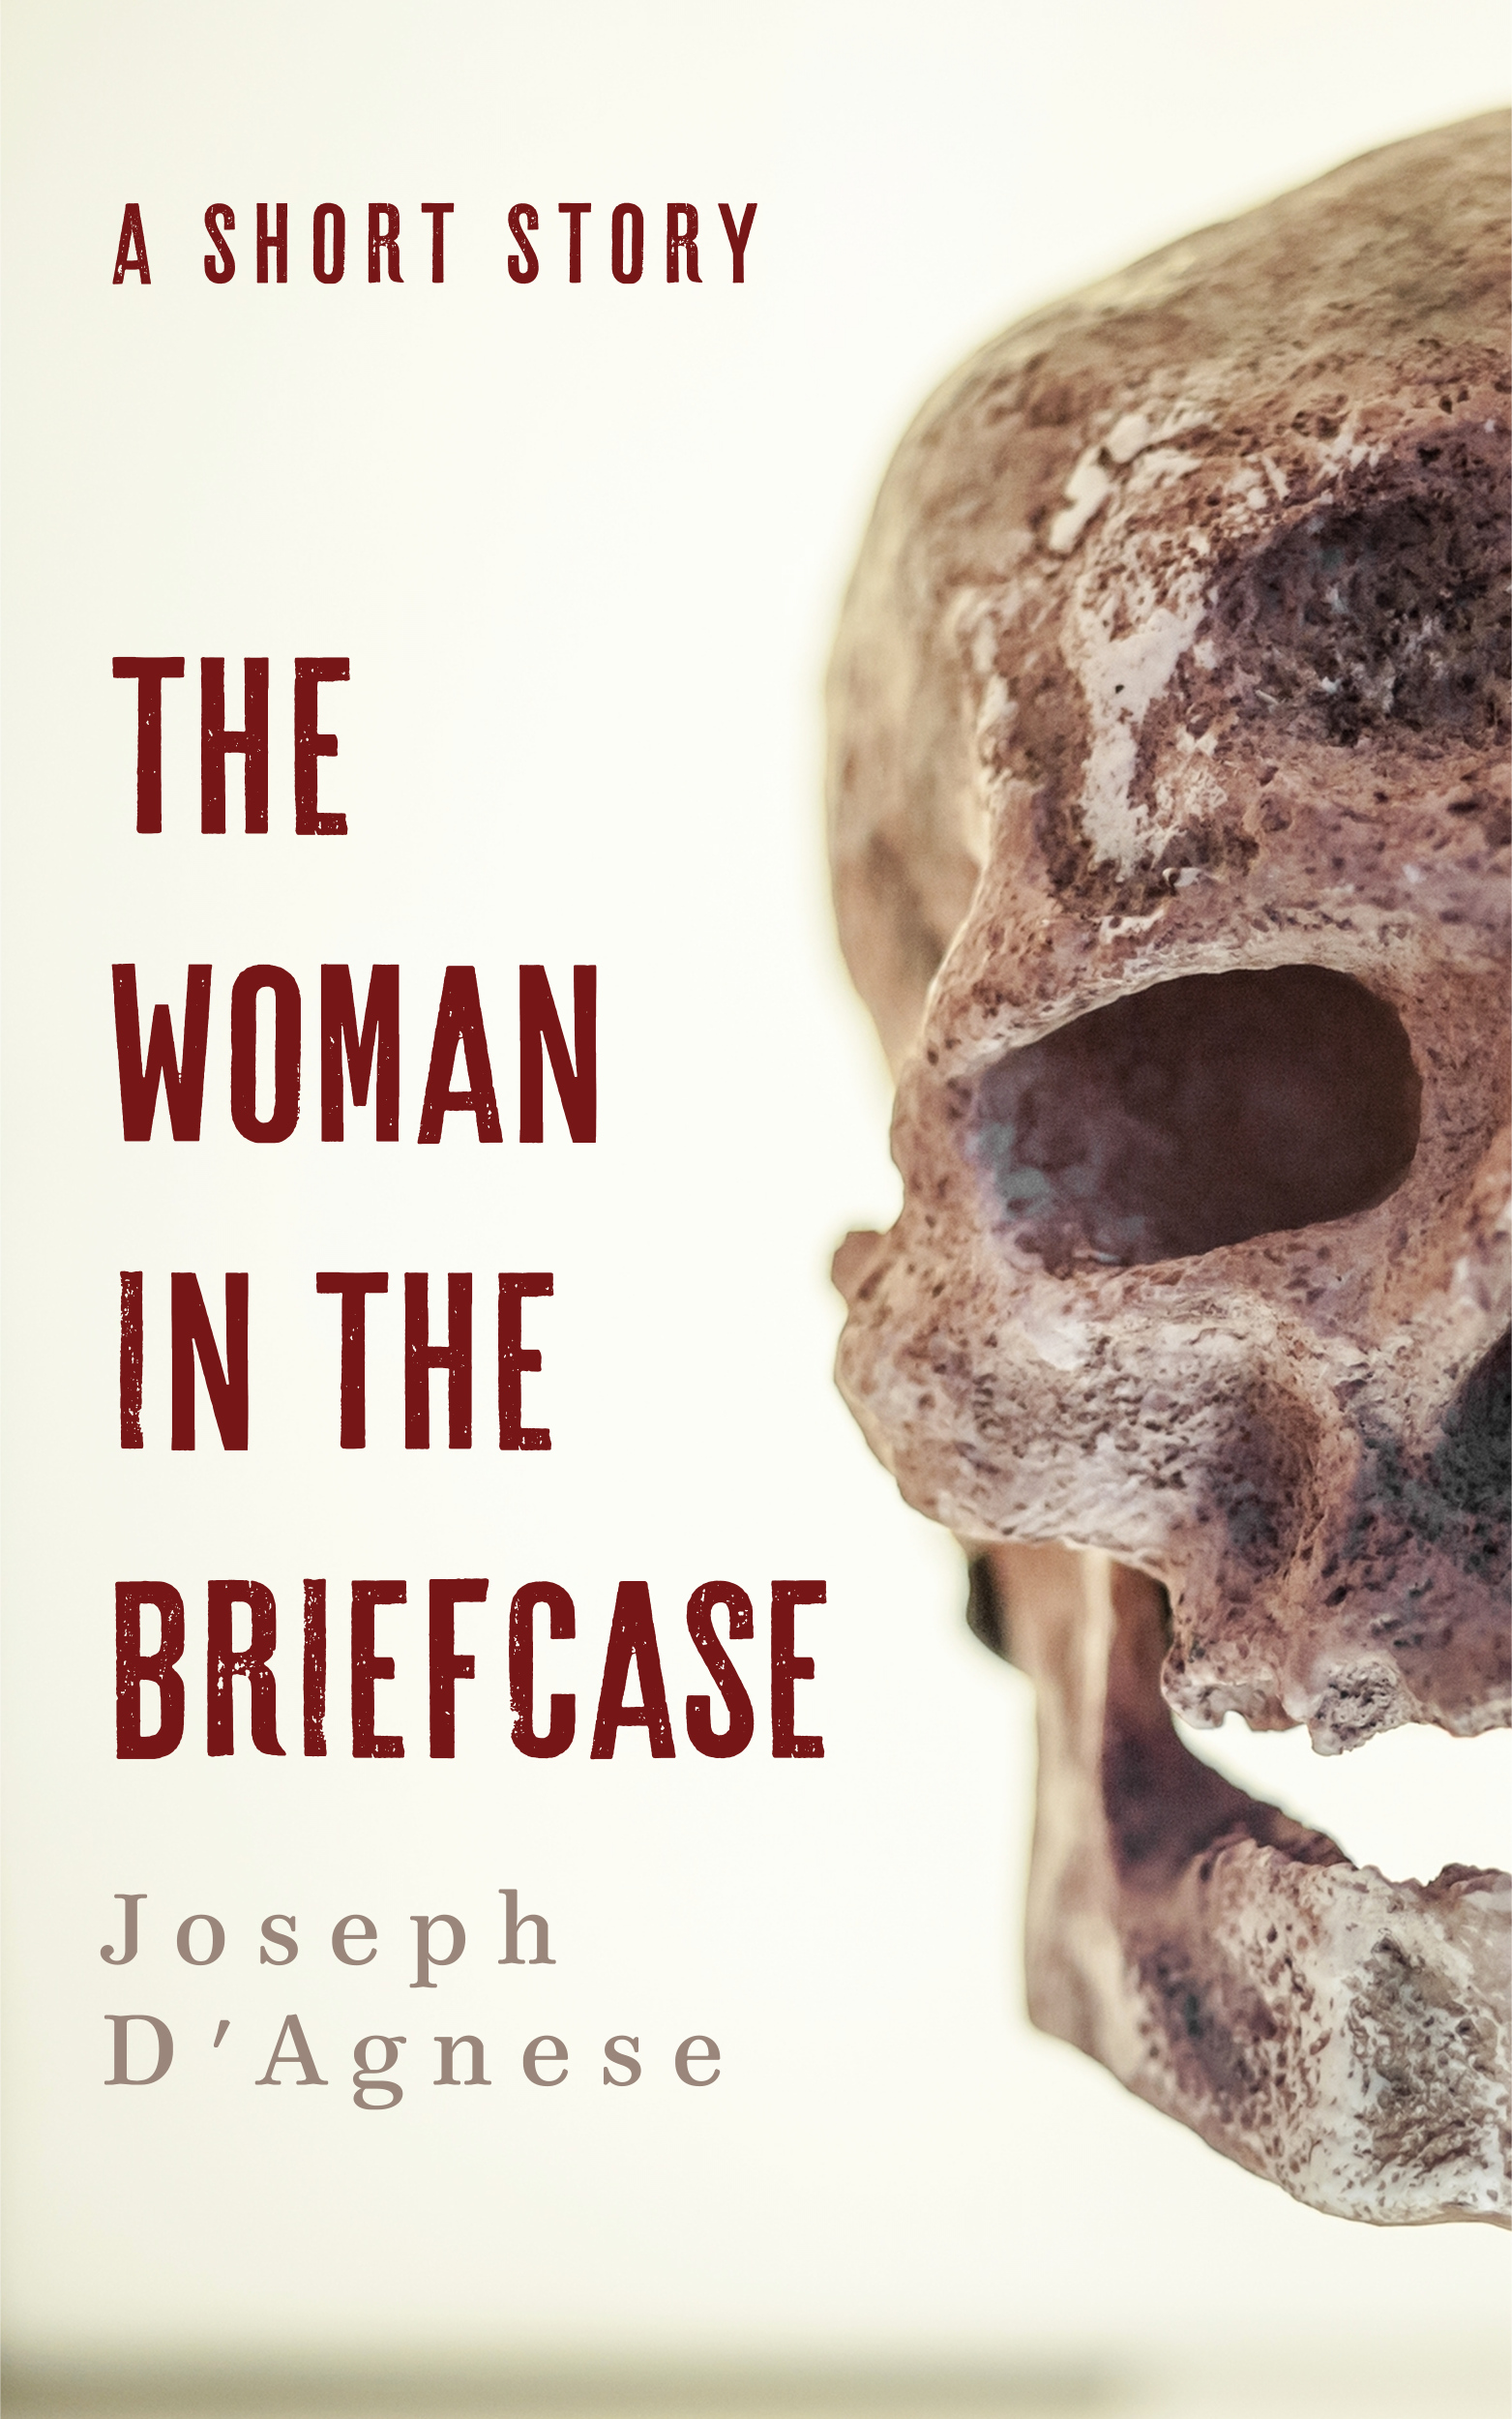 The Woman in the Briefcase, a crime story based simultaneously in the world of forensic anthropology and the long past, by Joseph D'Agnese